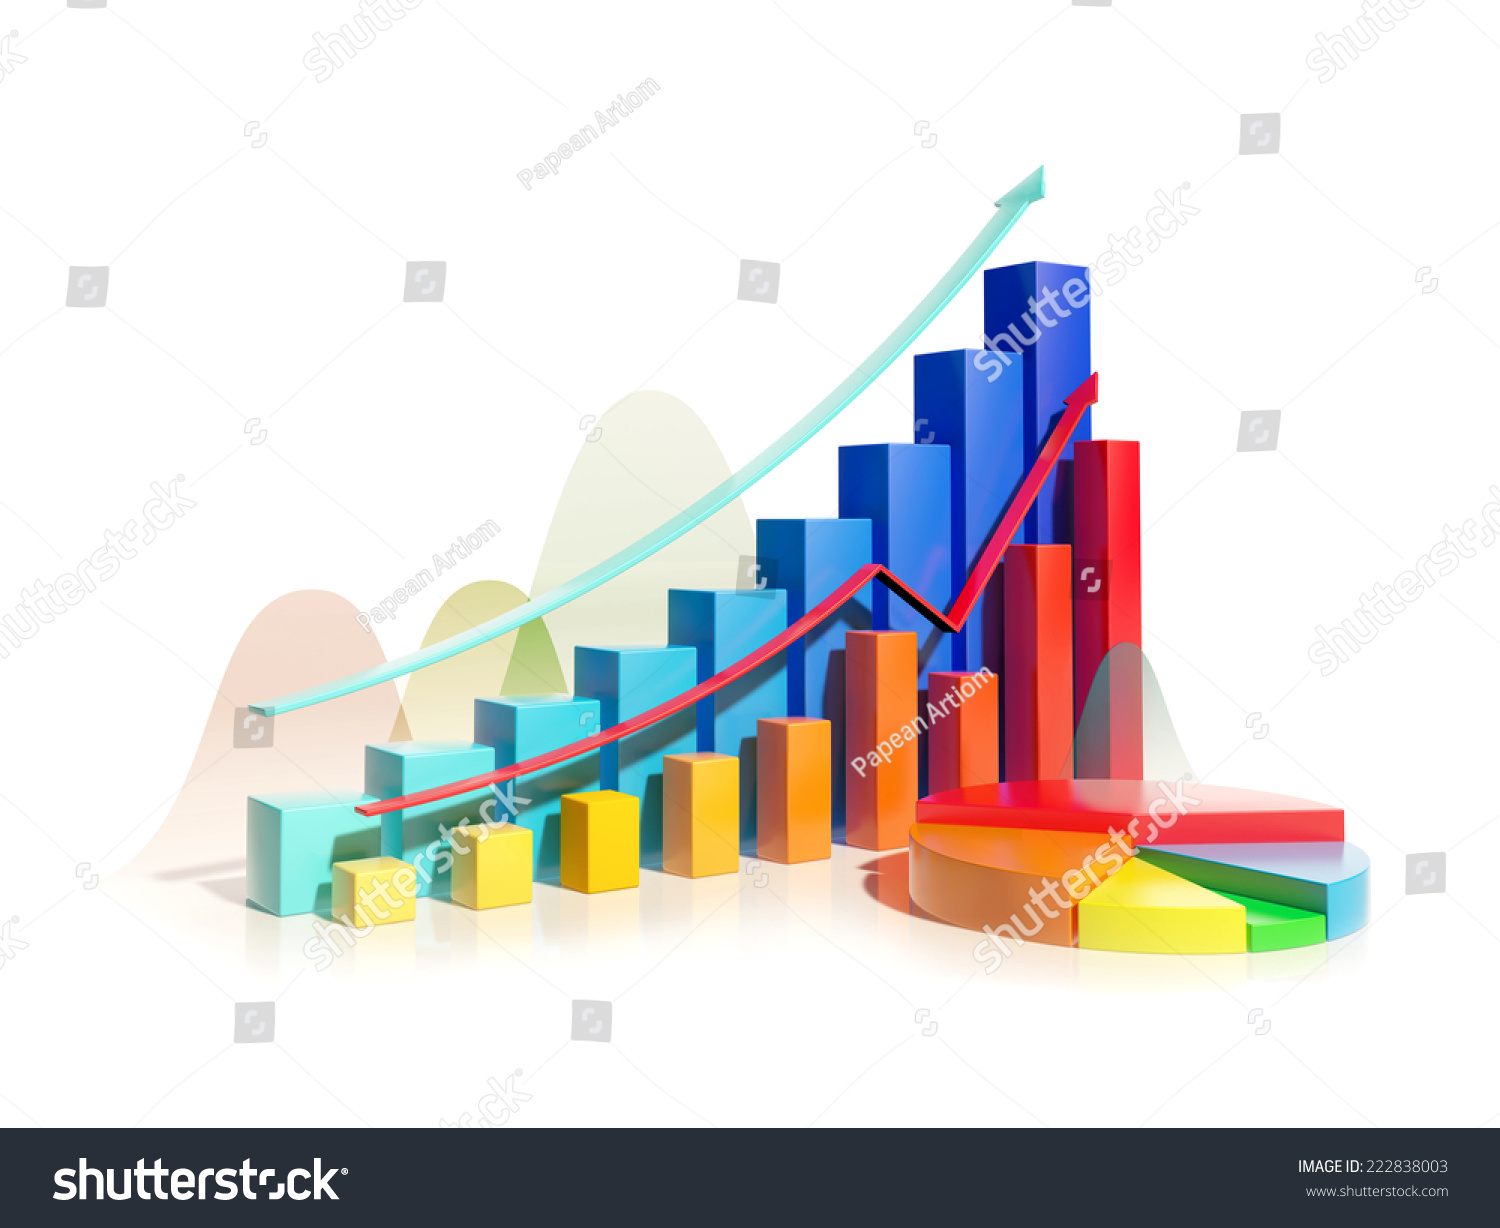 Bar graphs and pie charts image collections free any chart examples growing bar graphs pie chart on stock illustration 222838003 growing bar graphs and pie chart on nvjuhfo Images